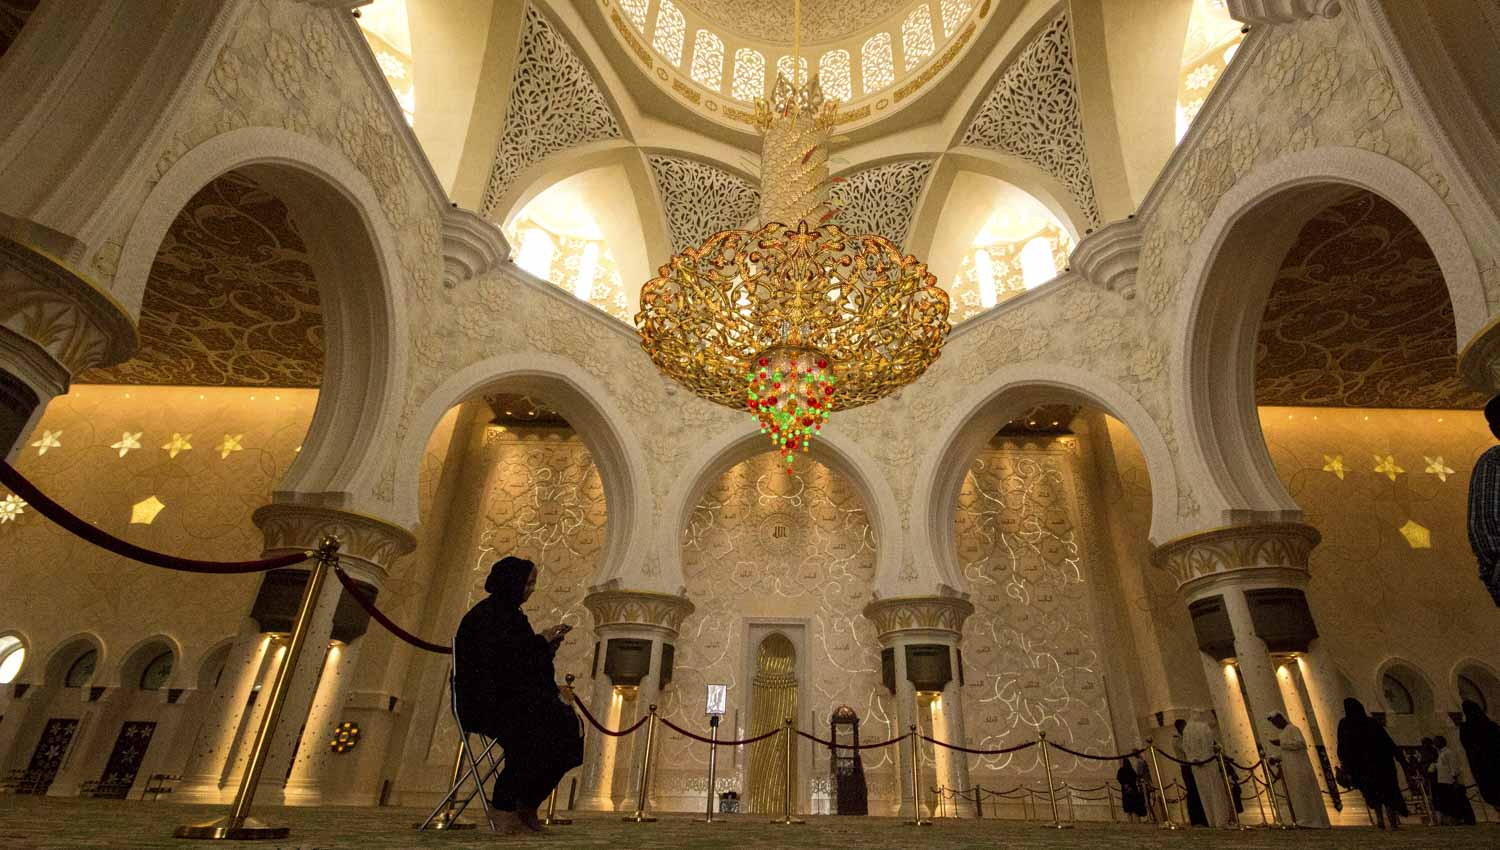 It's home to the world's largest chandelier